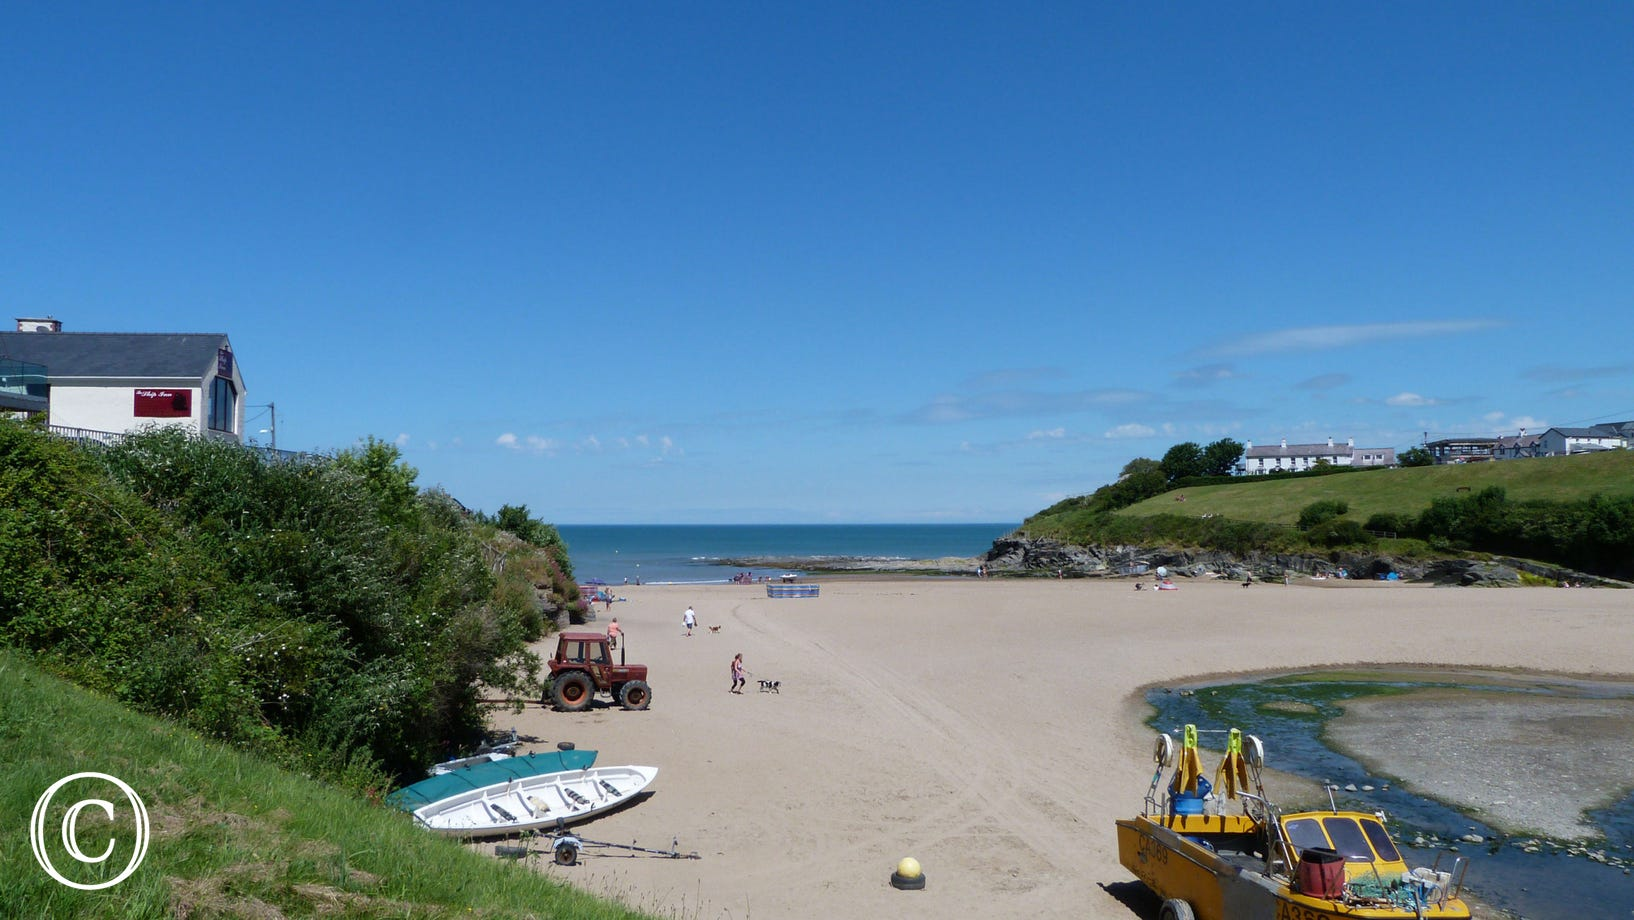 The beach in Aberporth